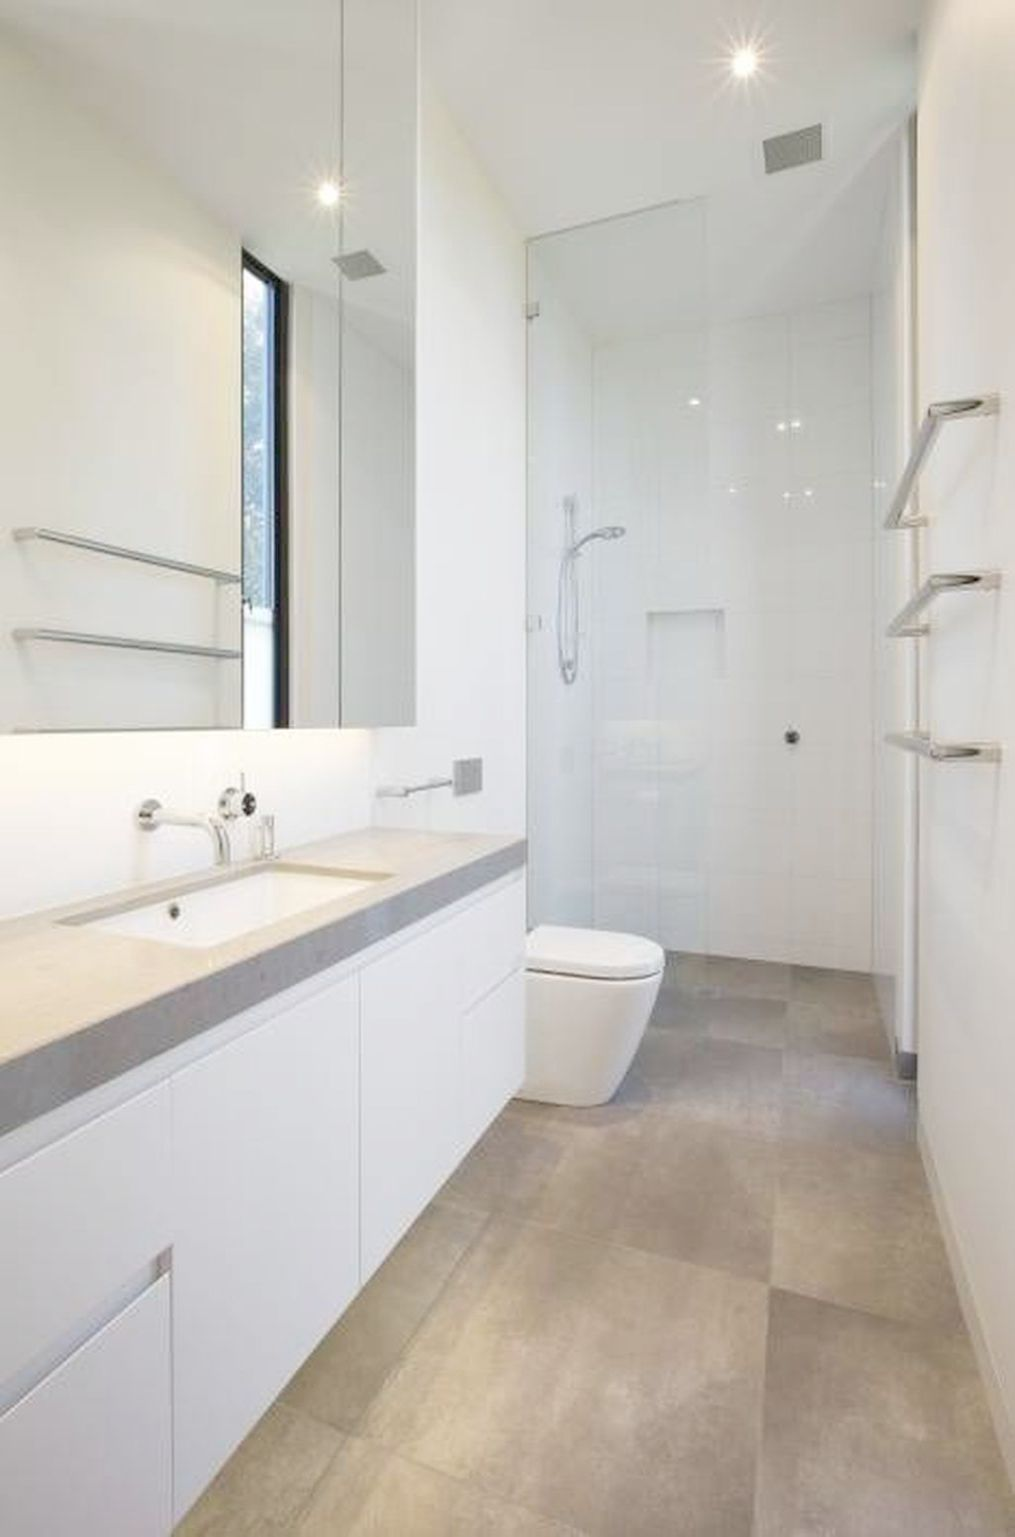 Bathroom Ideas Australia Rather Modern Bathroom Essentials Where Modern Bathroom Taps Opposit Modern Small Bathrooms Bathroom Design Small Long Narrow Bathroom